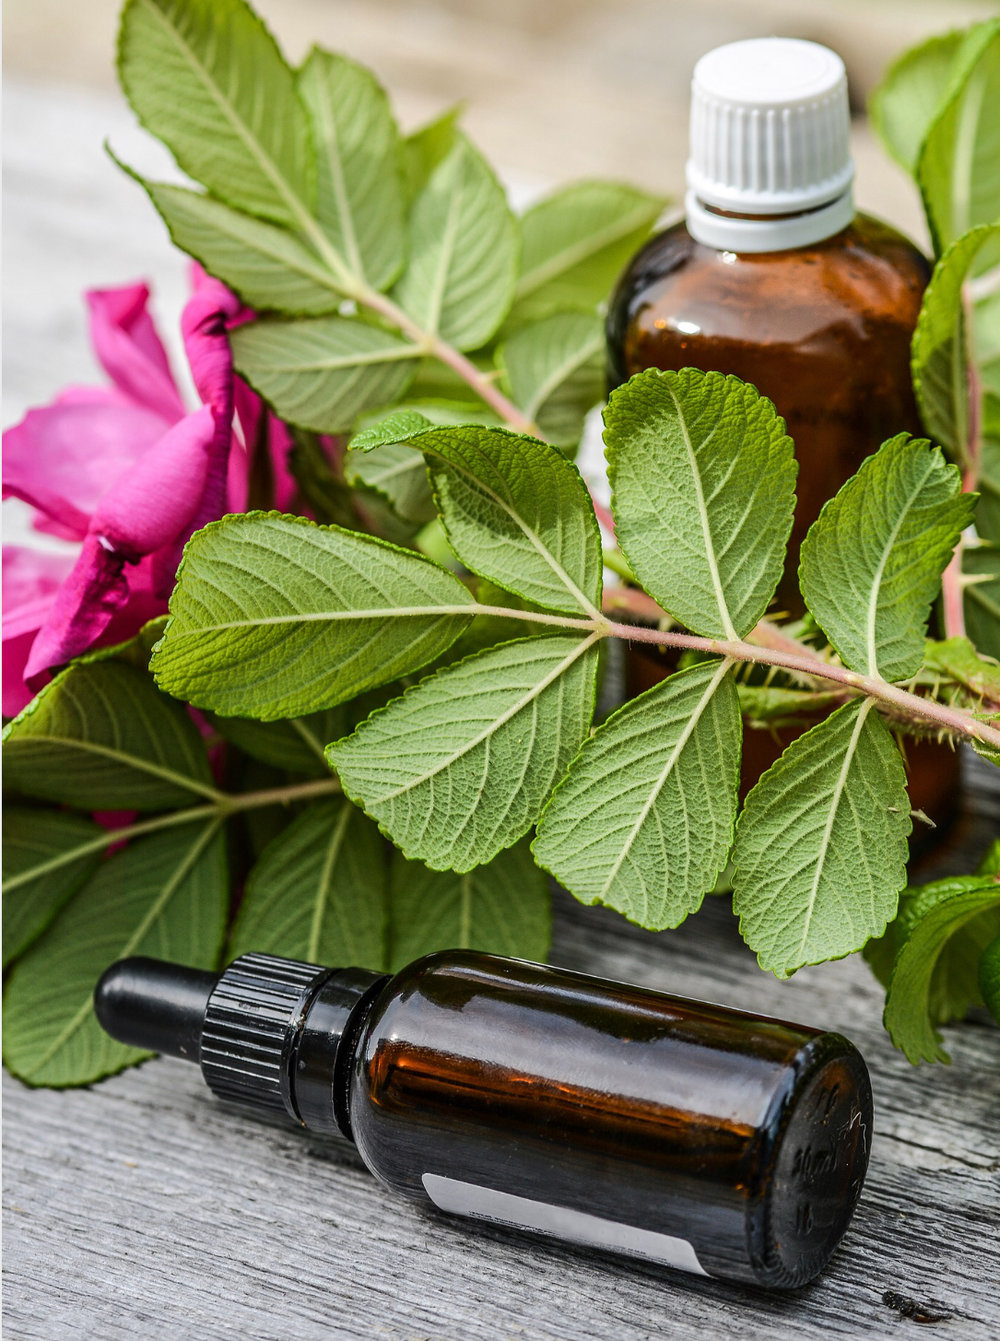 Questions? - Are you curious about other ways you can incorporate essential oils into your life? Let us know in the comments what else you're wondering about!